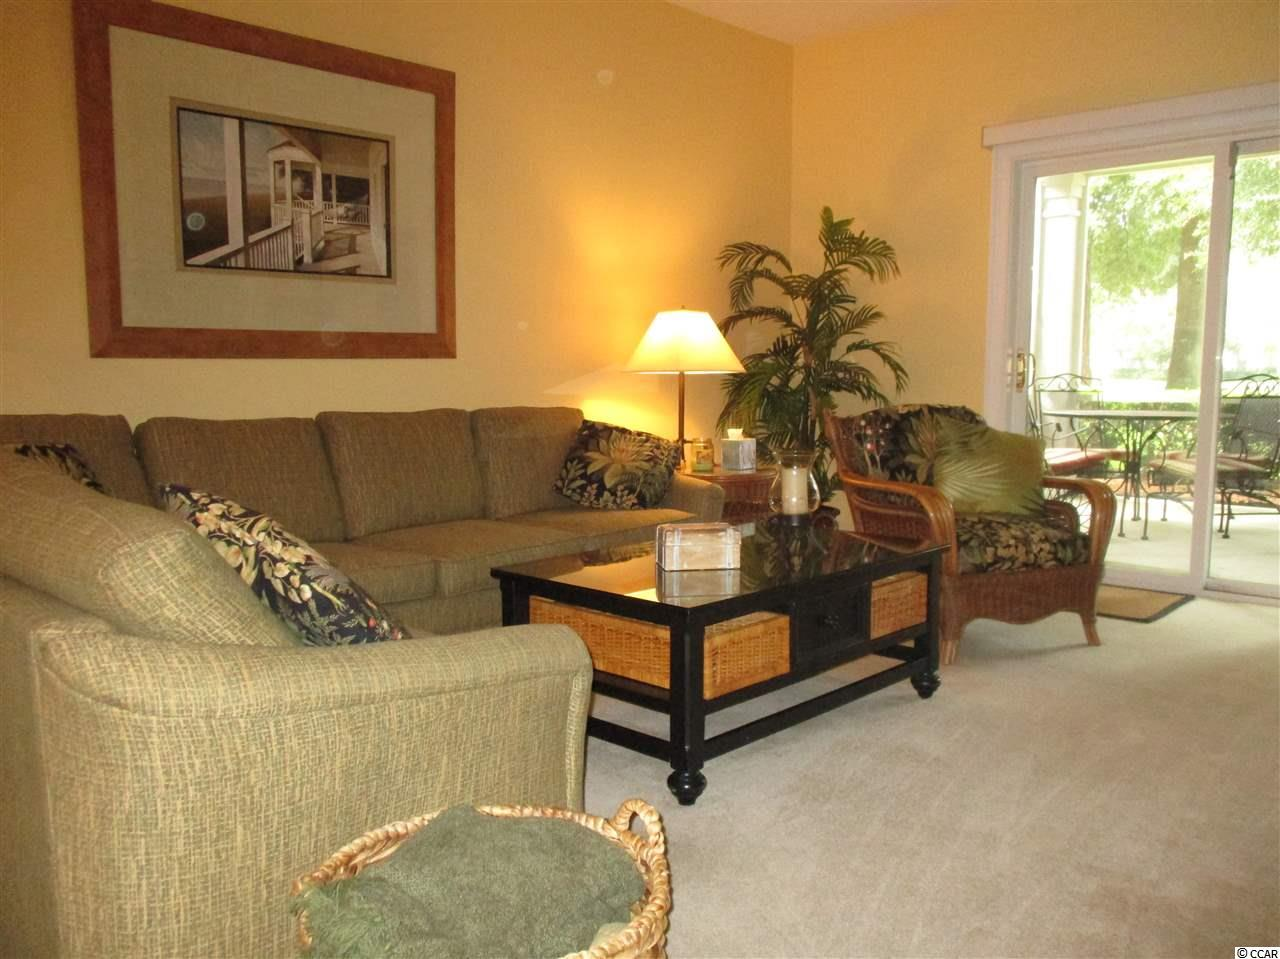 Wood Stork Landing condo for sale in Pawleys Island, SC